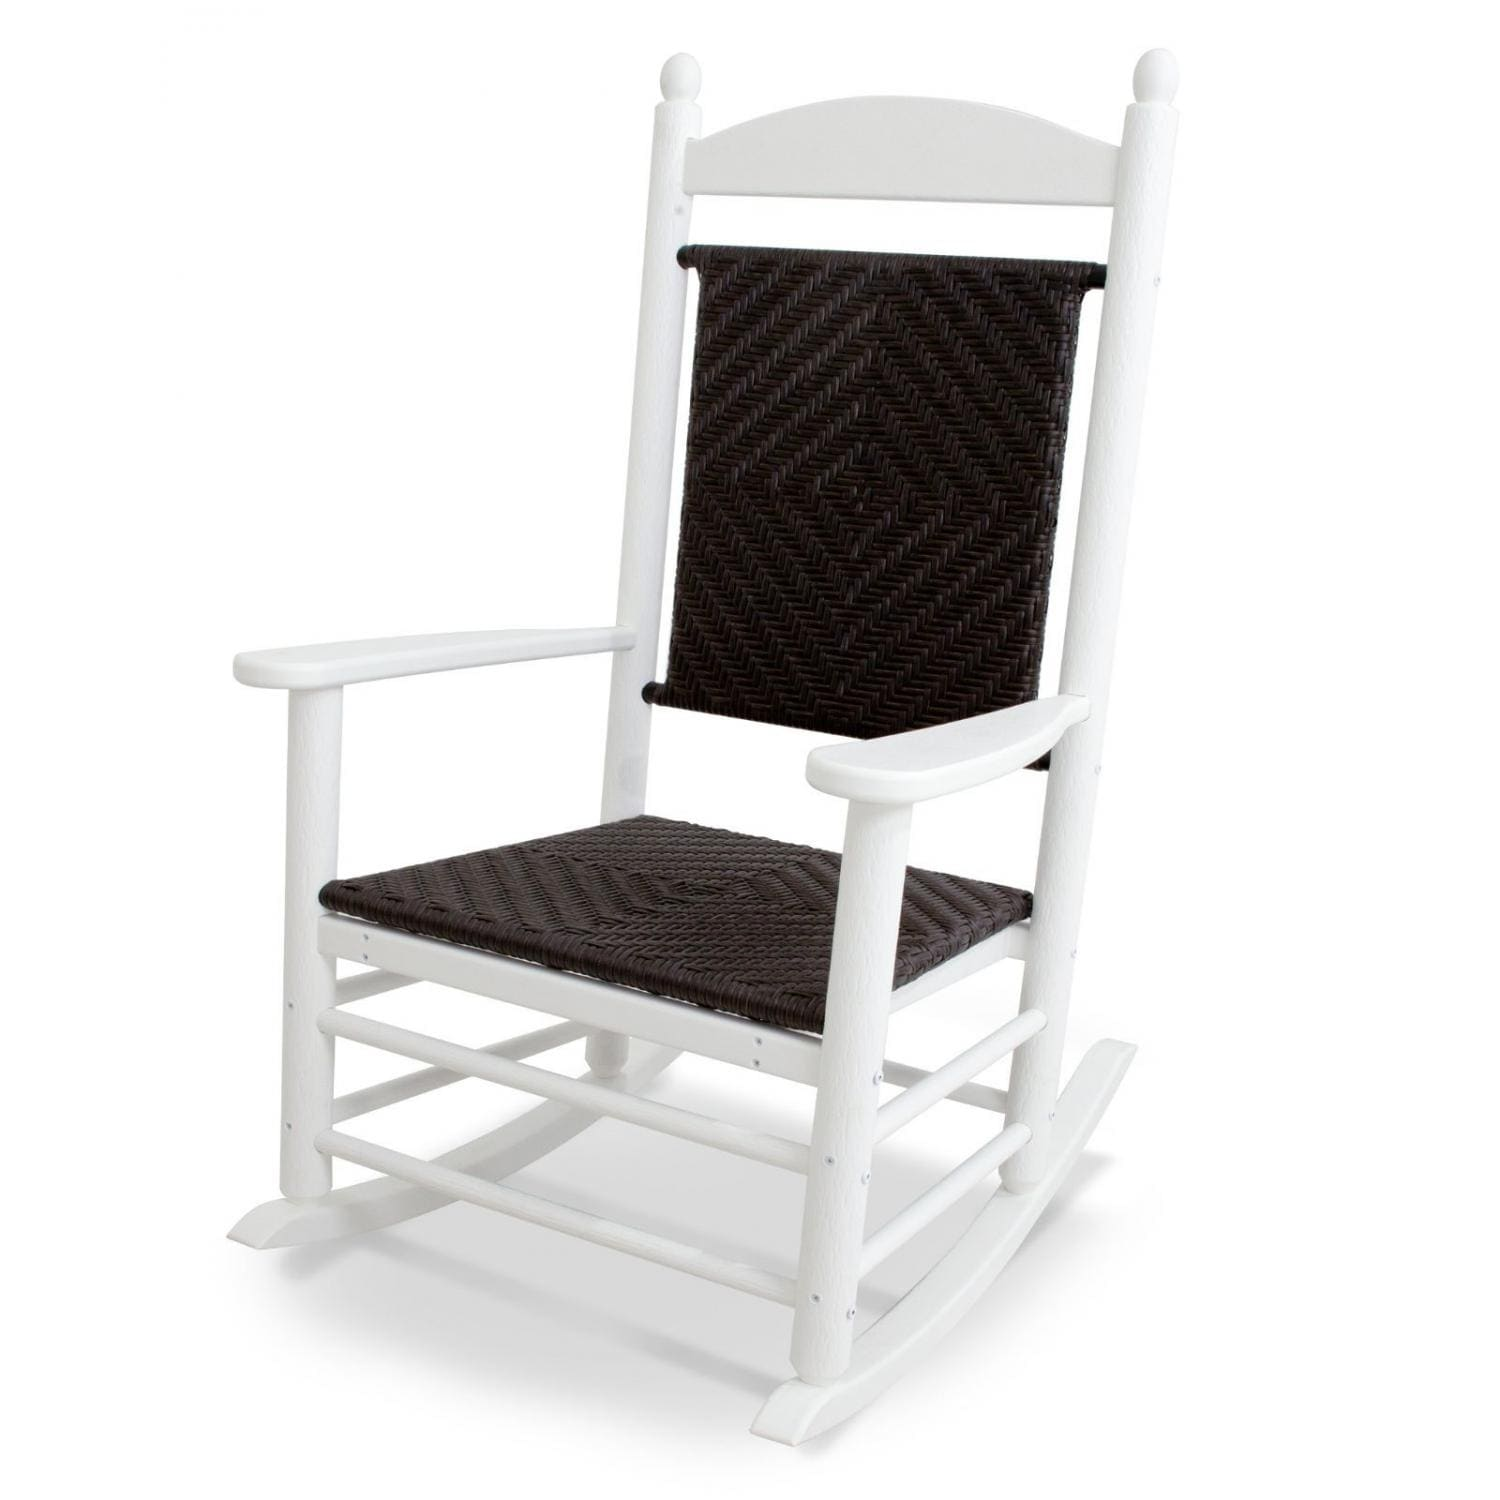 Video. Jefferson Recycled Plastic Wood Woven Patio Rocking Chair ...